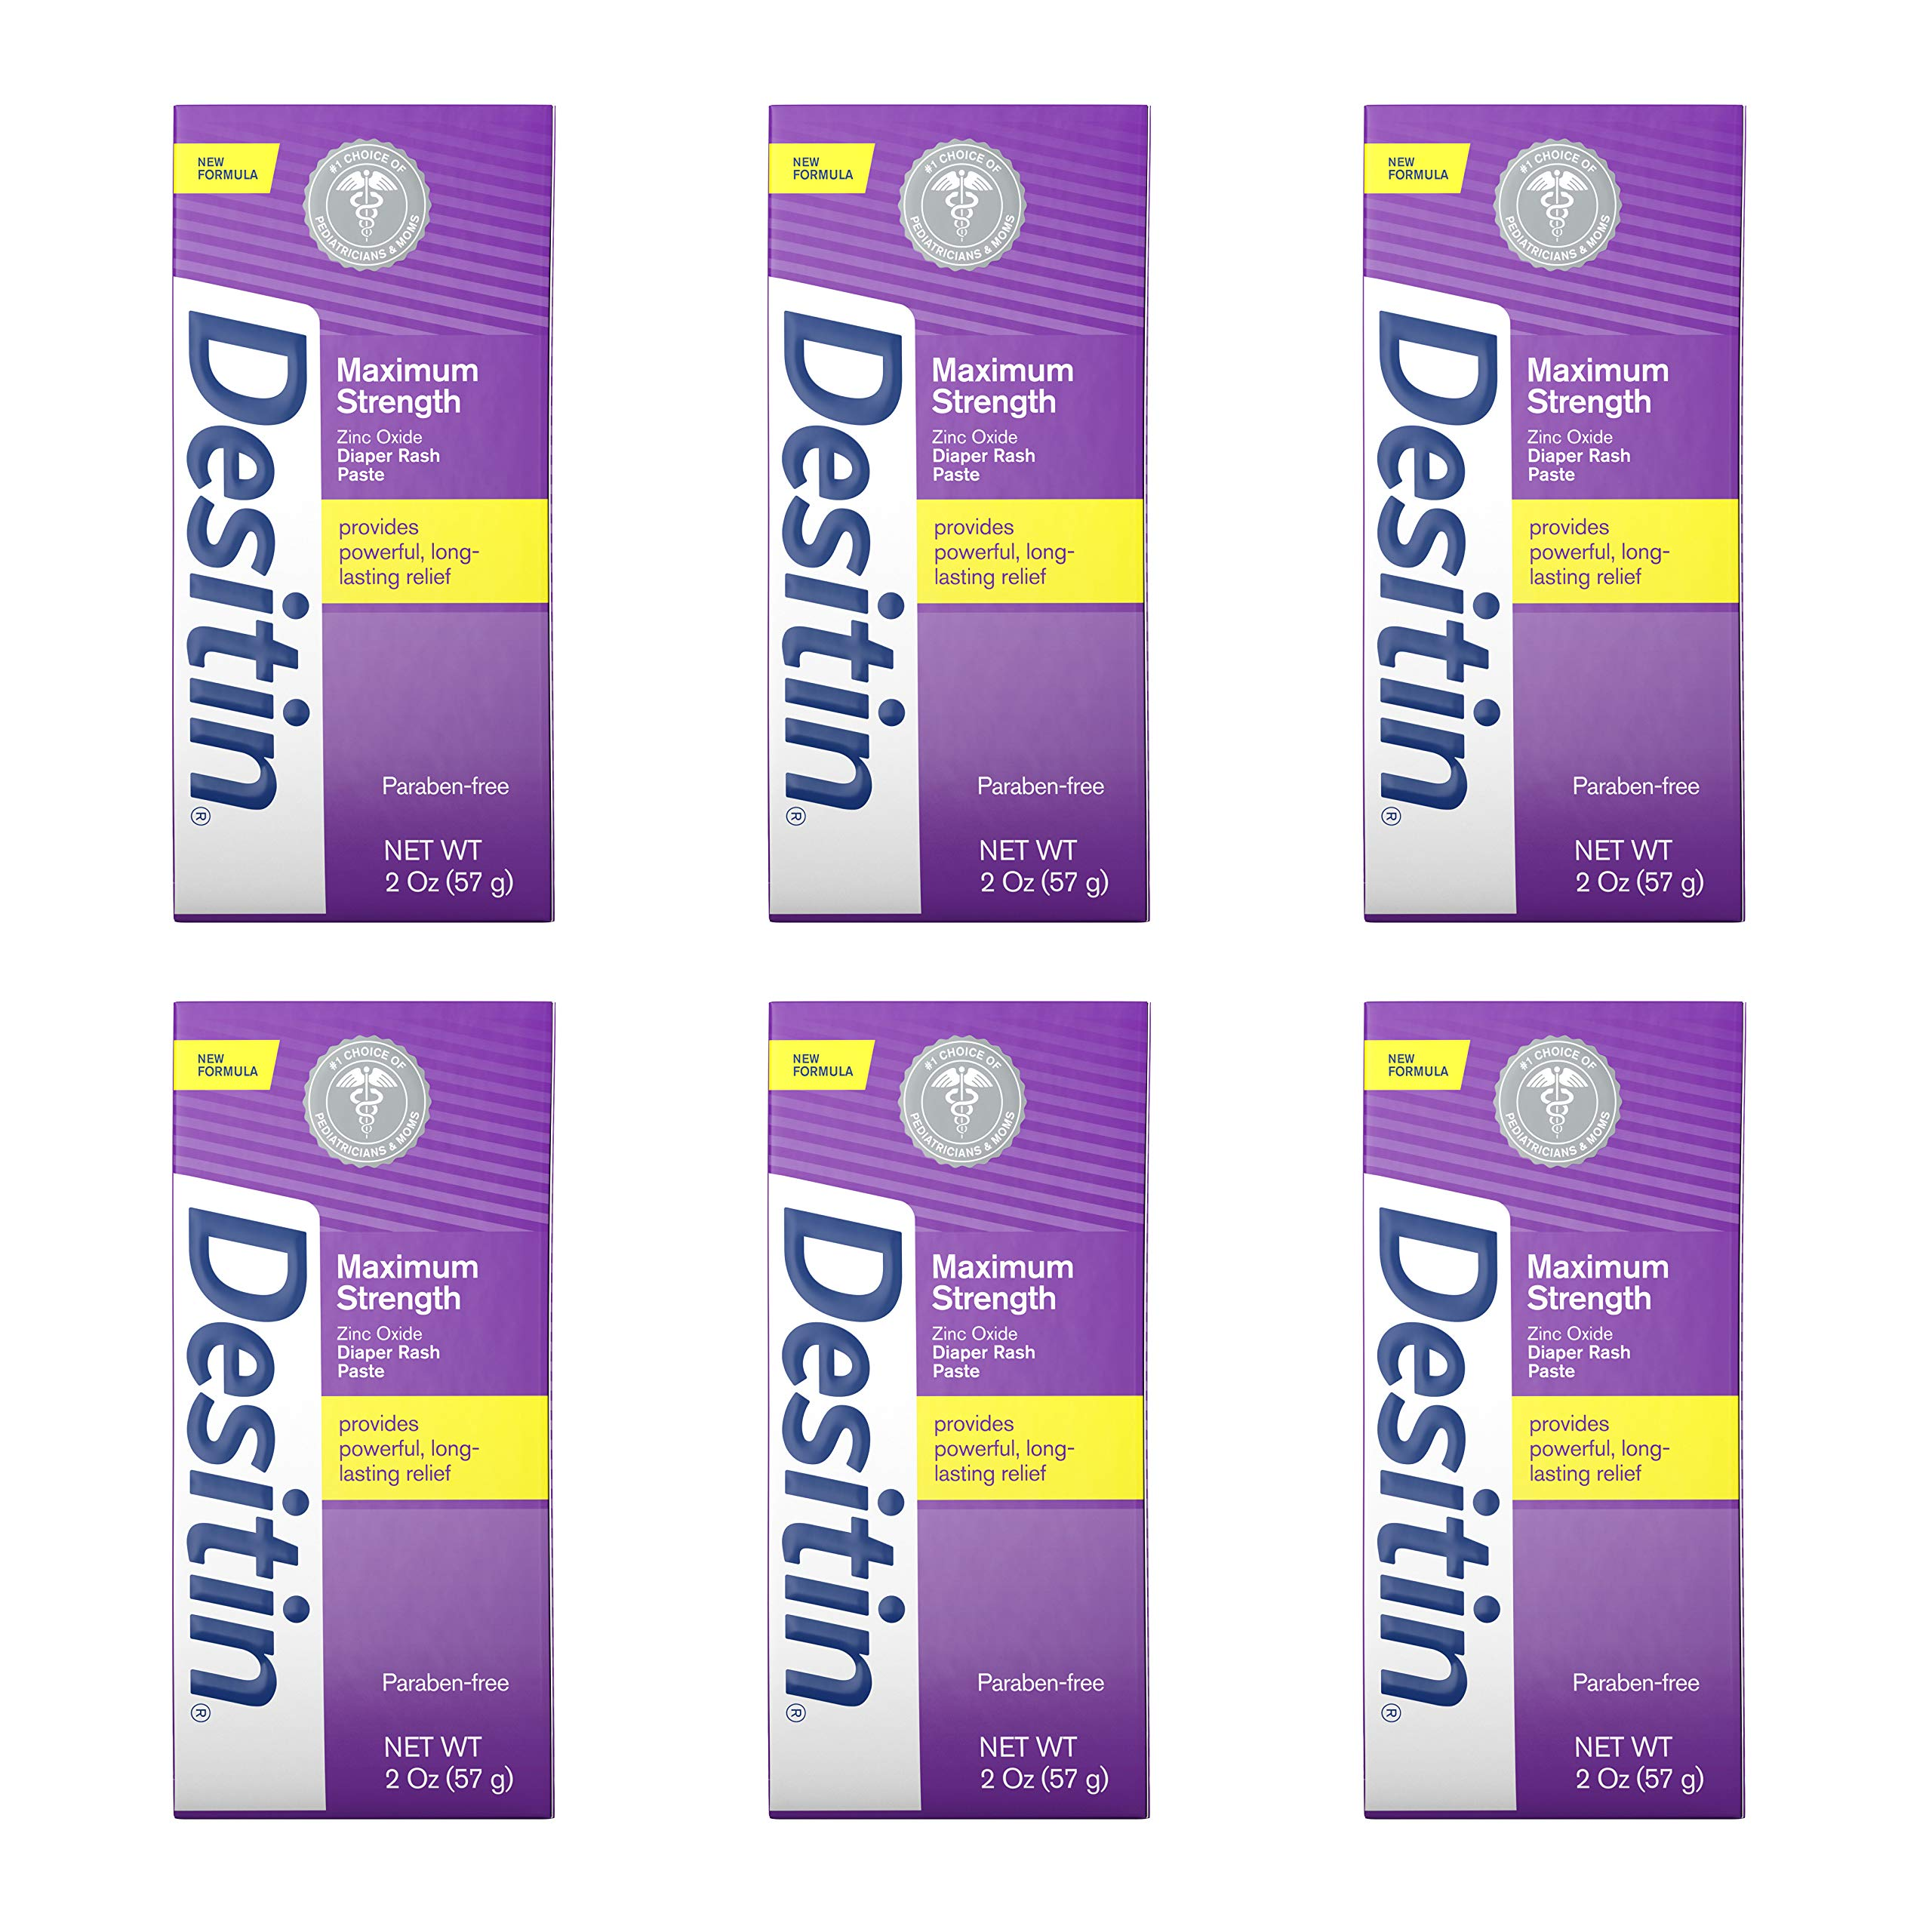 Desitin Maximum Strength Baby Diaper Rash Cream with 40% Zinc Oxide, Travel Size, 2 Ounce (Pack of 6) by Desitin